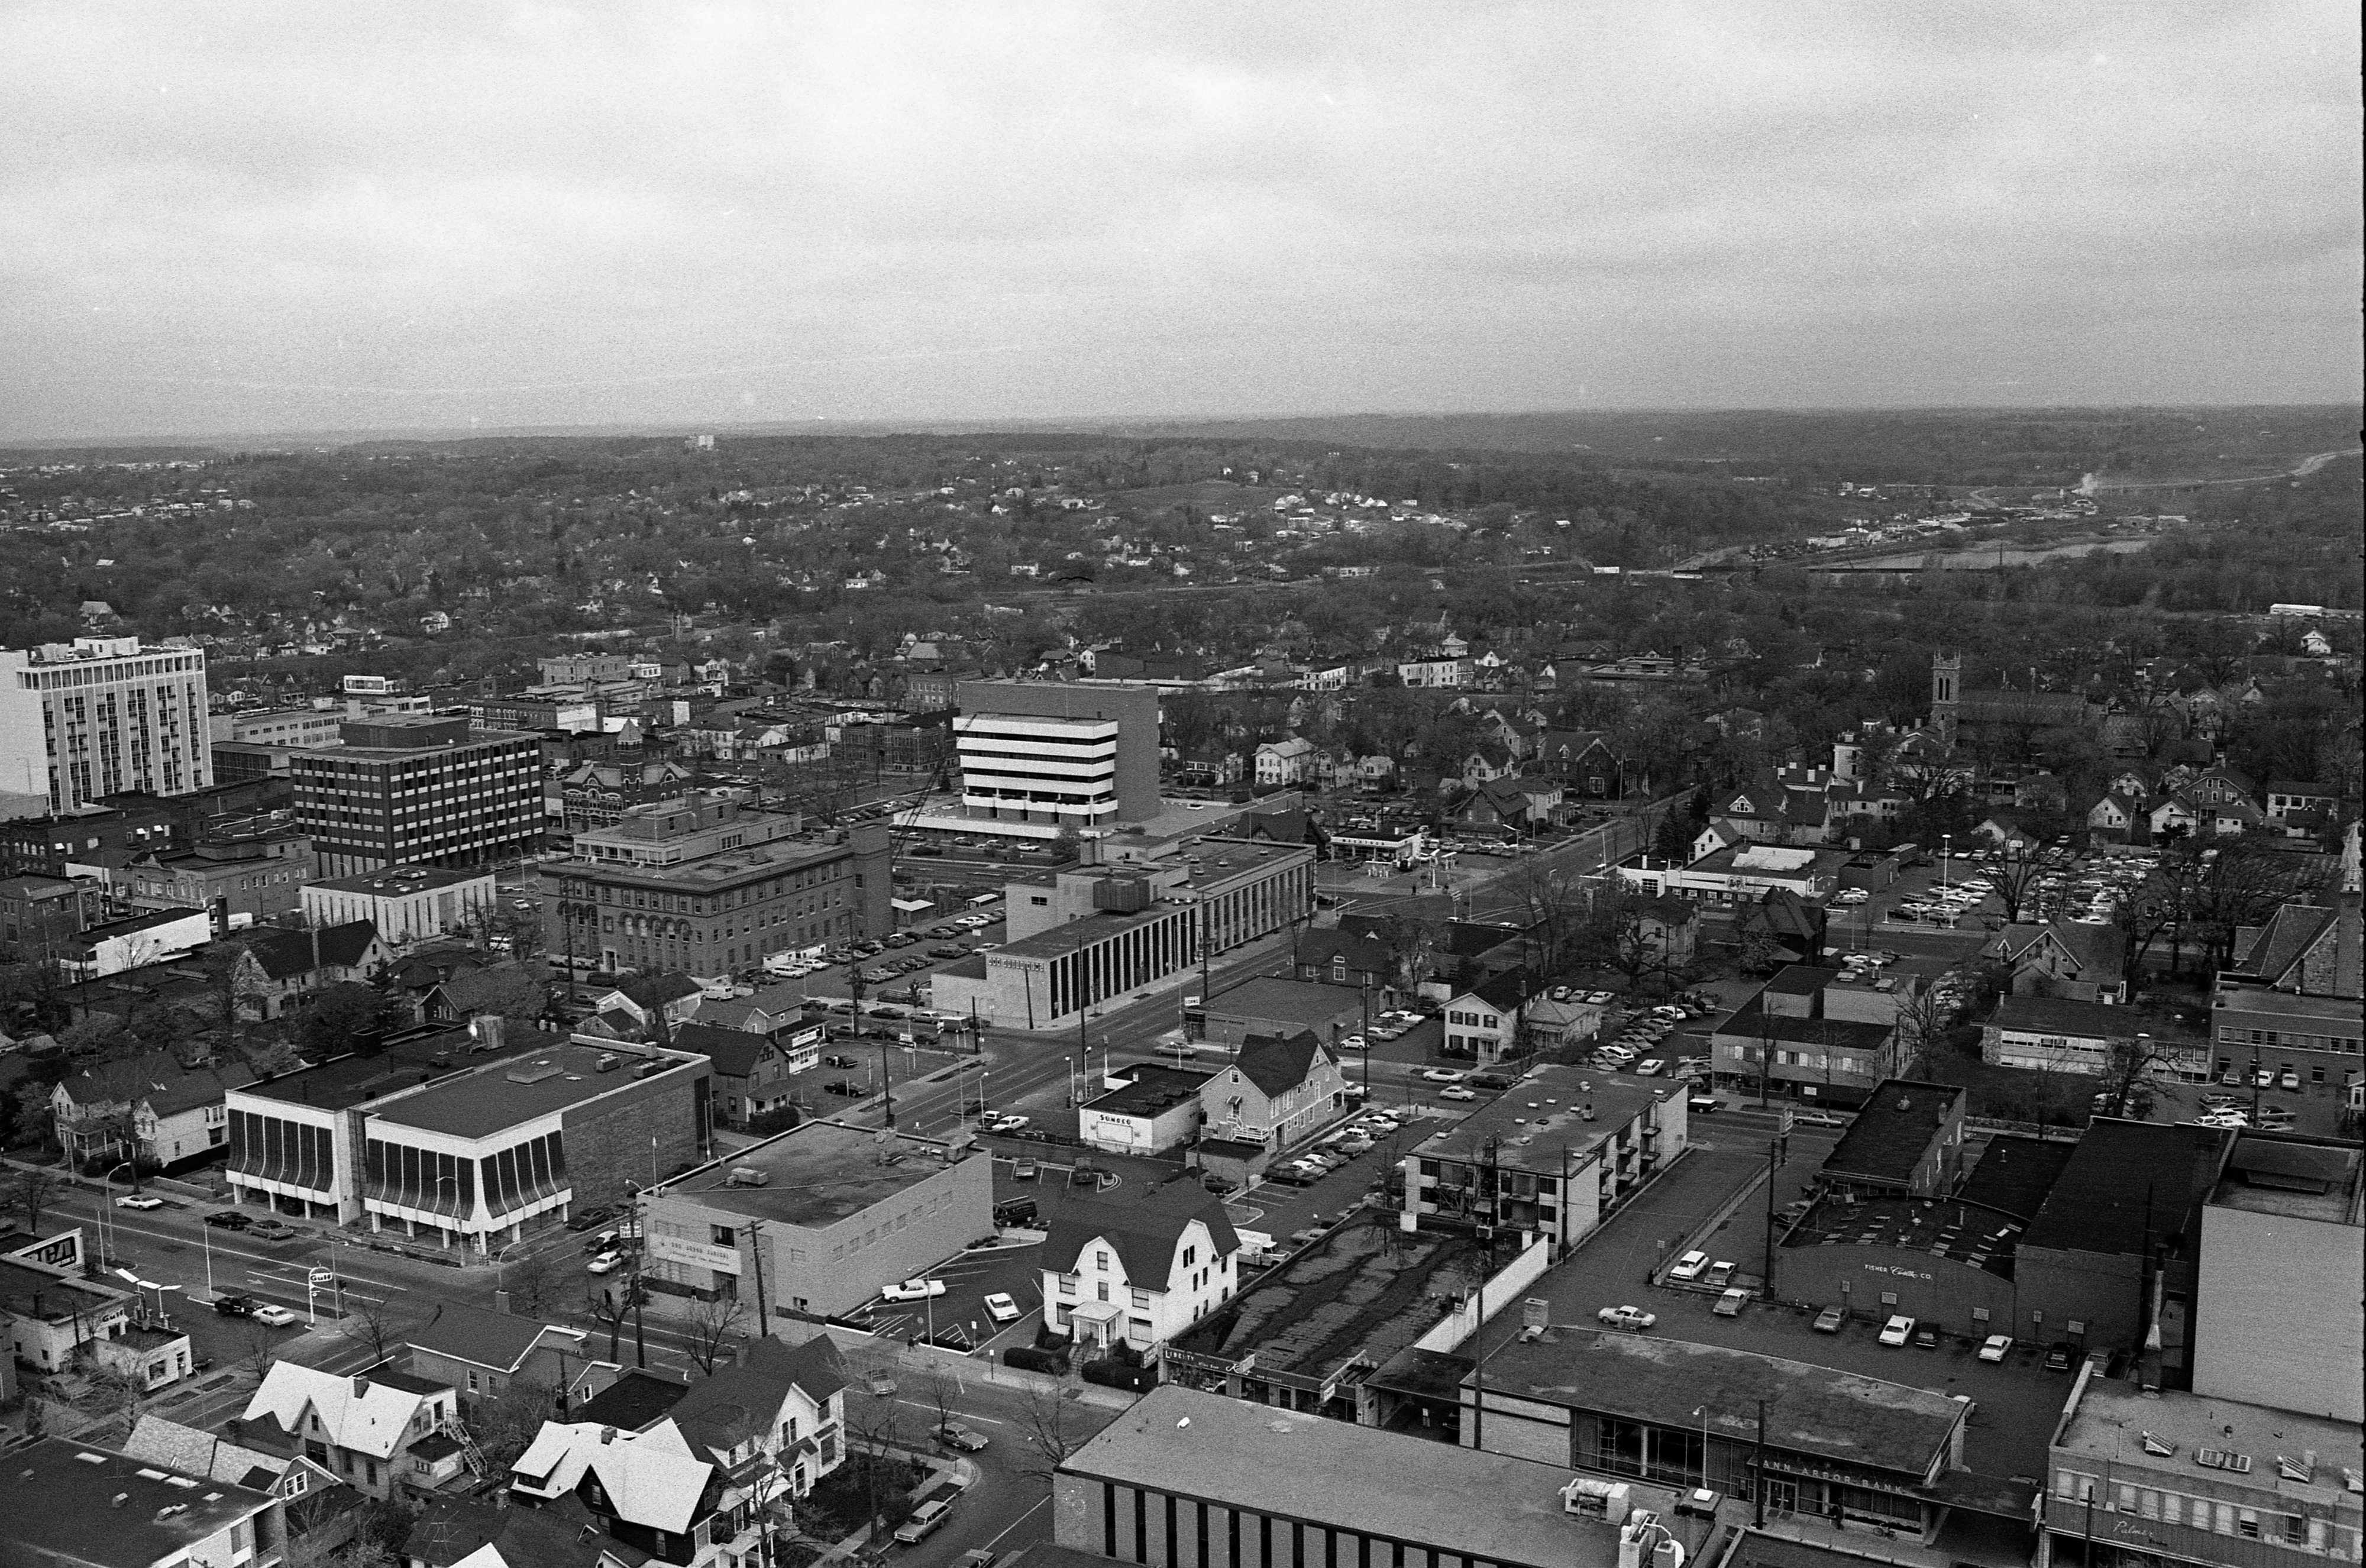 Aerial View From Roof Of Tower Plaza, November 1968 image